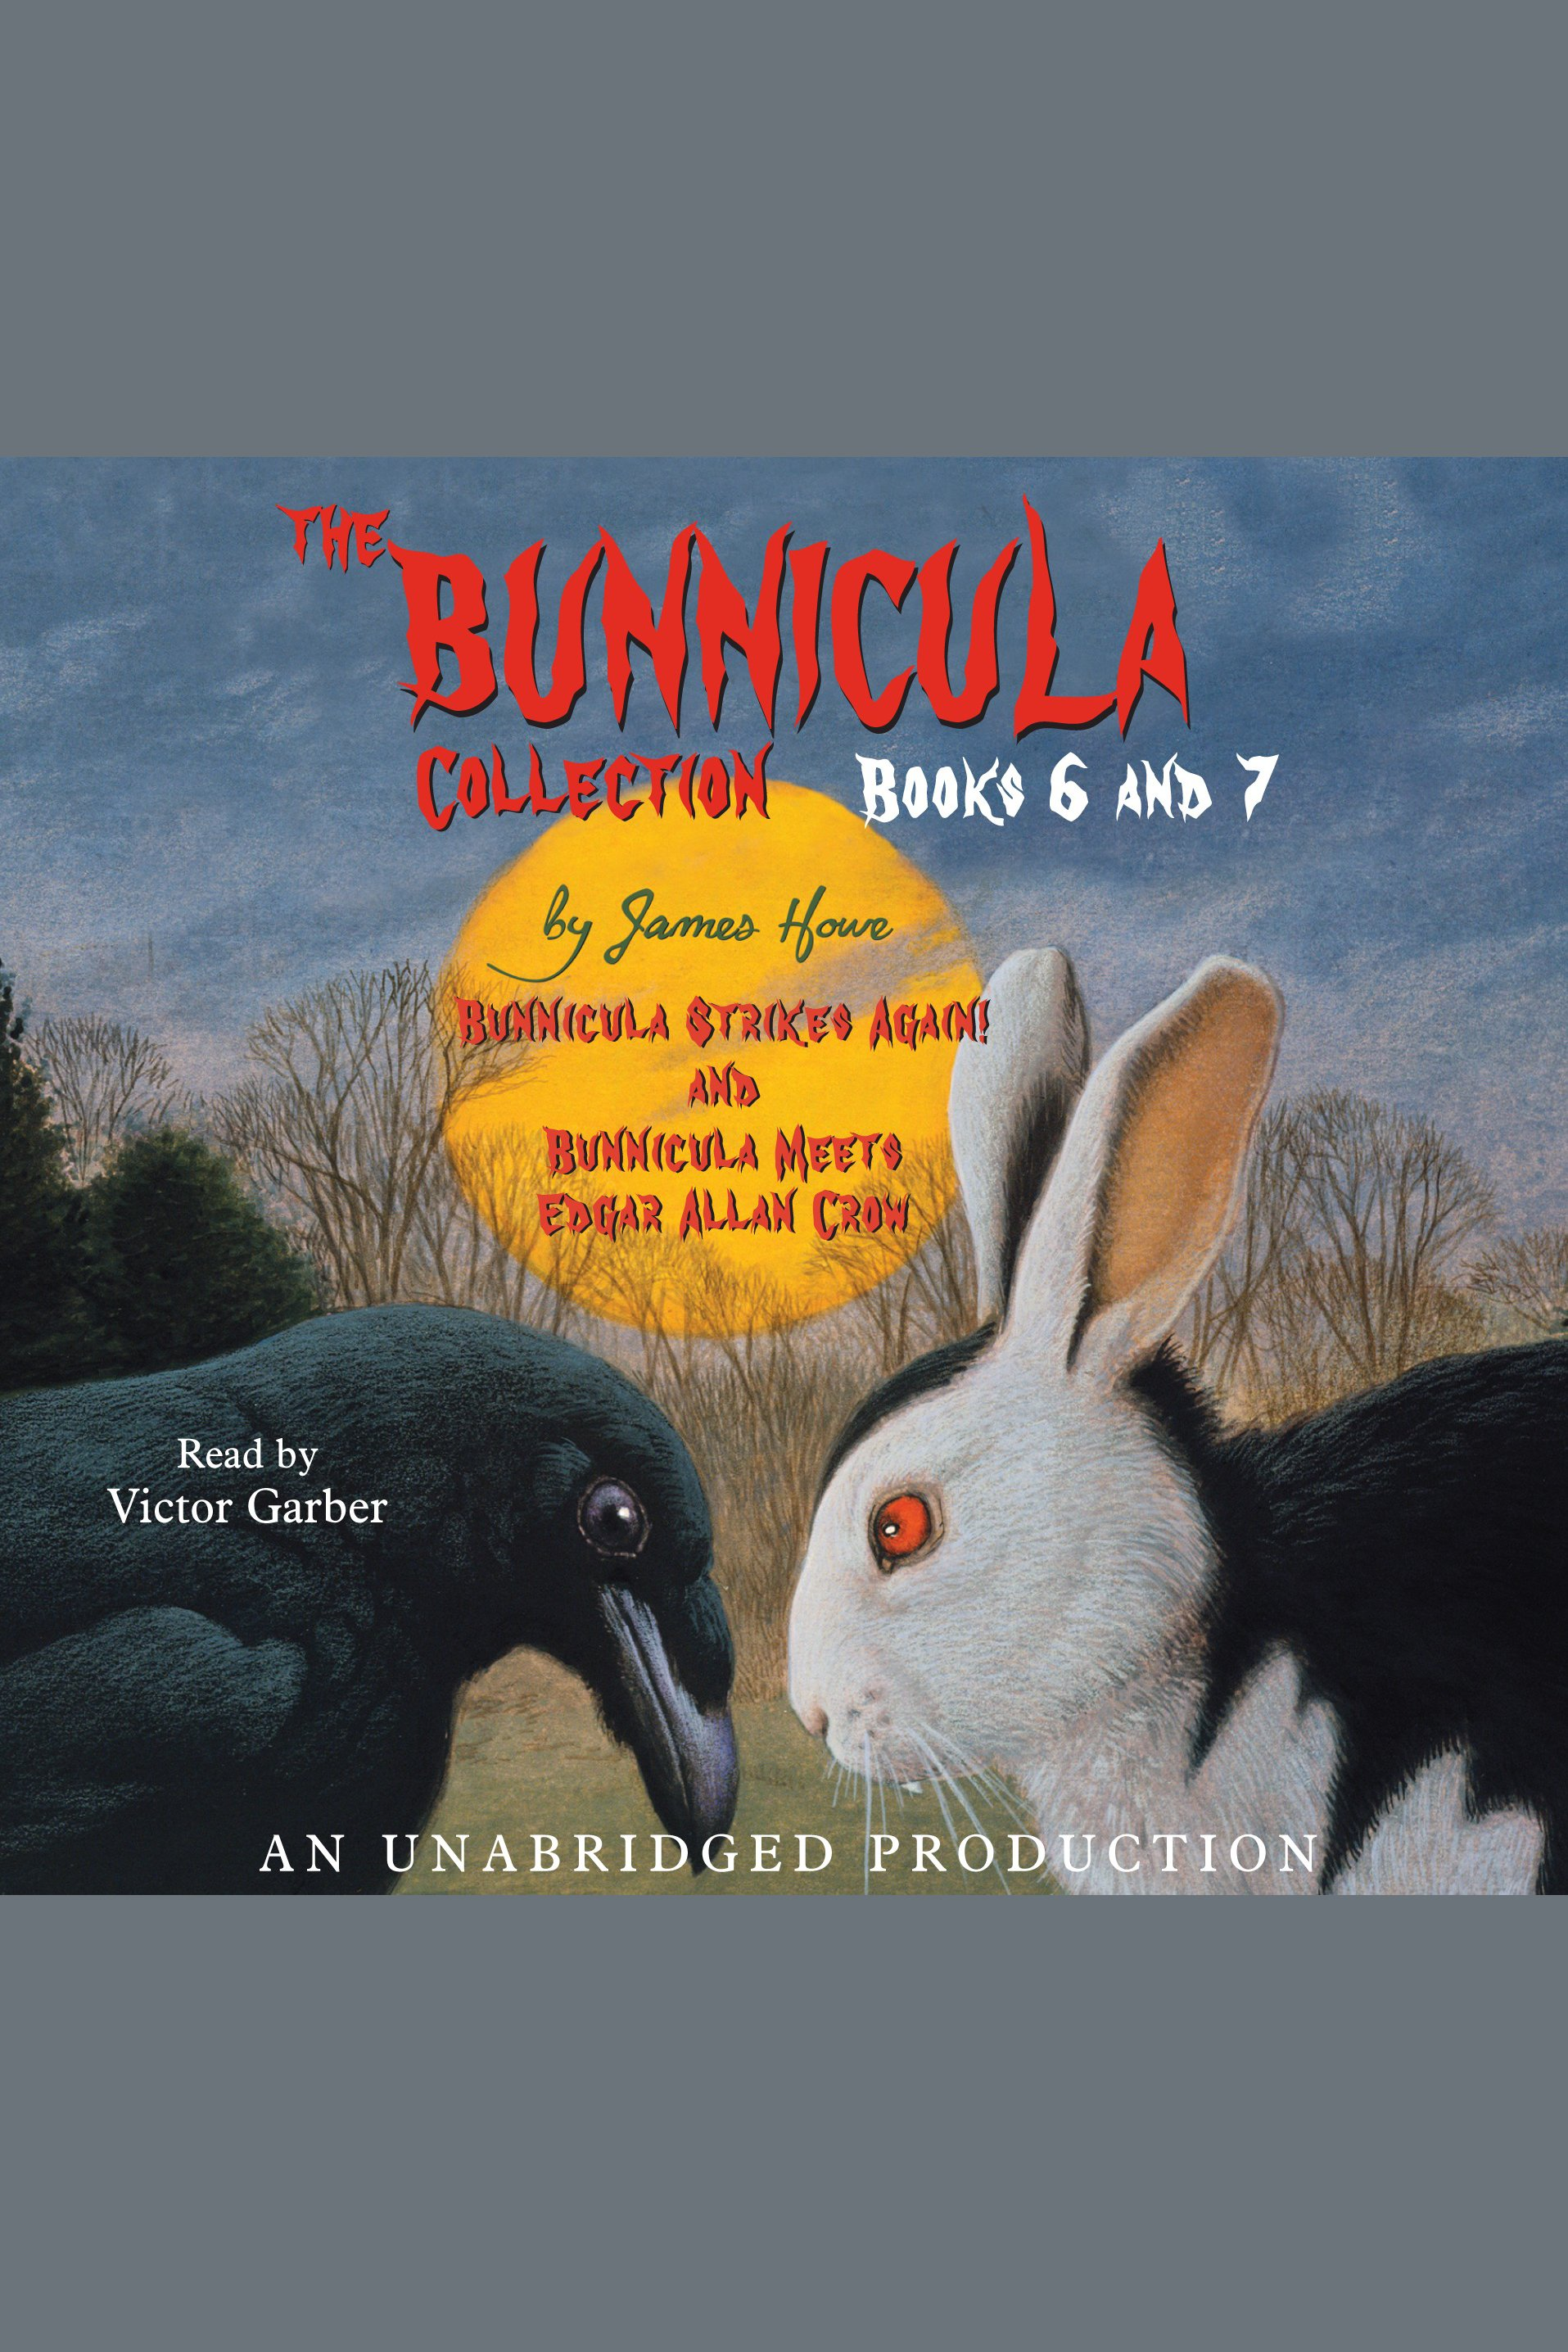 The Bunnicula collection: Books 6-7 cover image